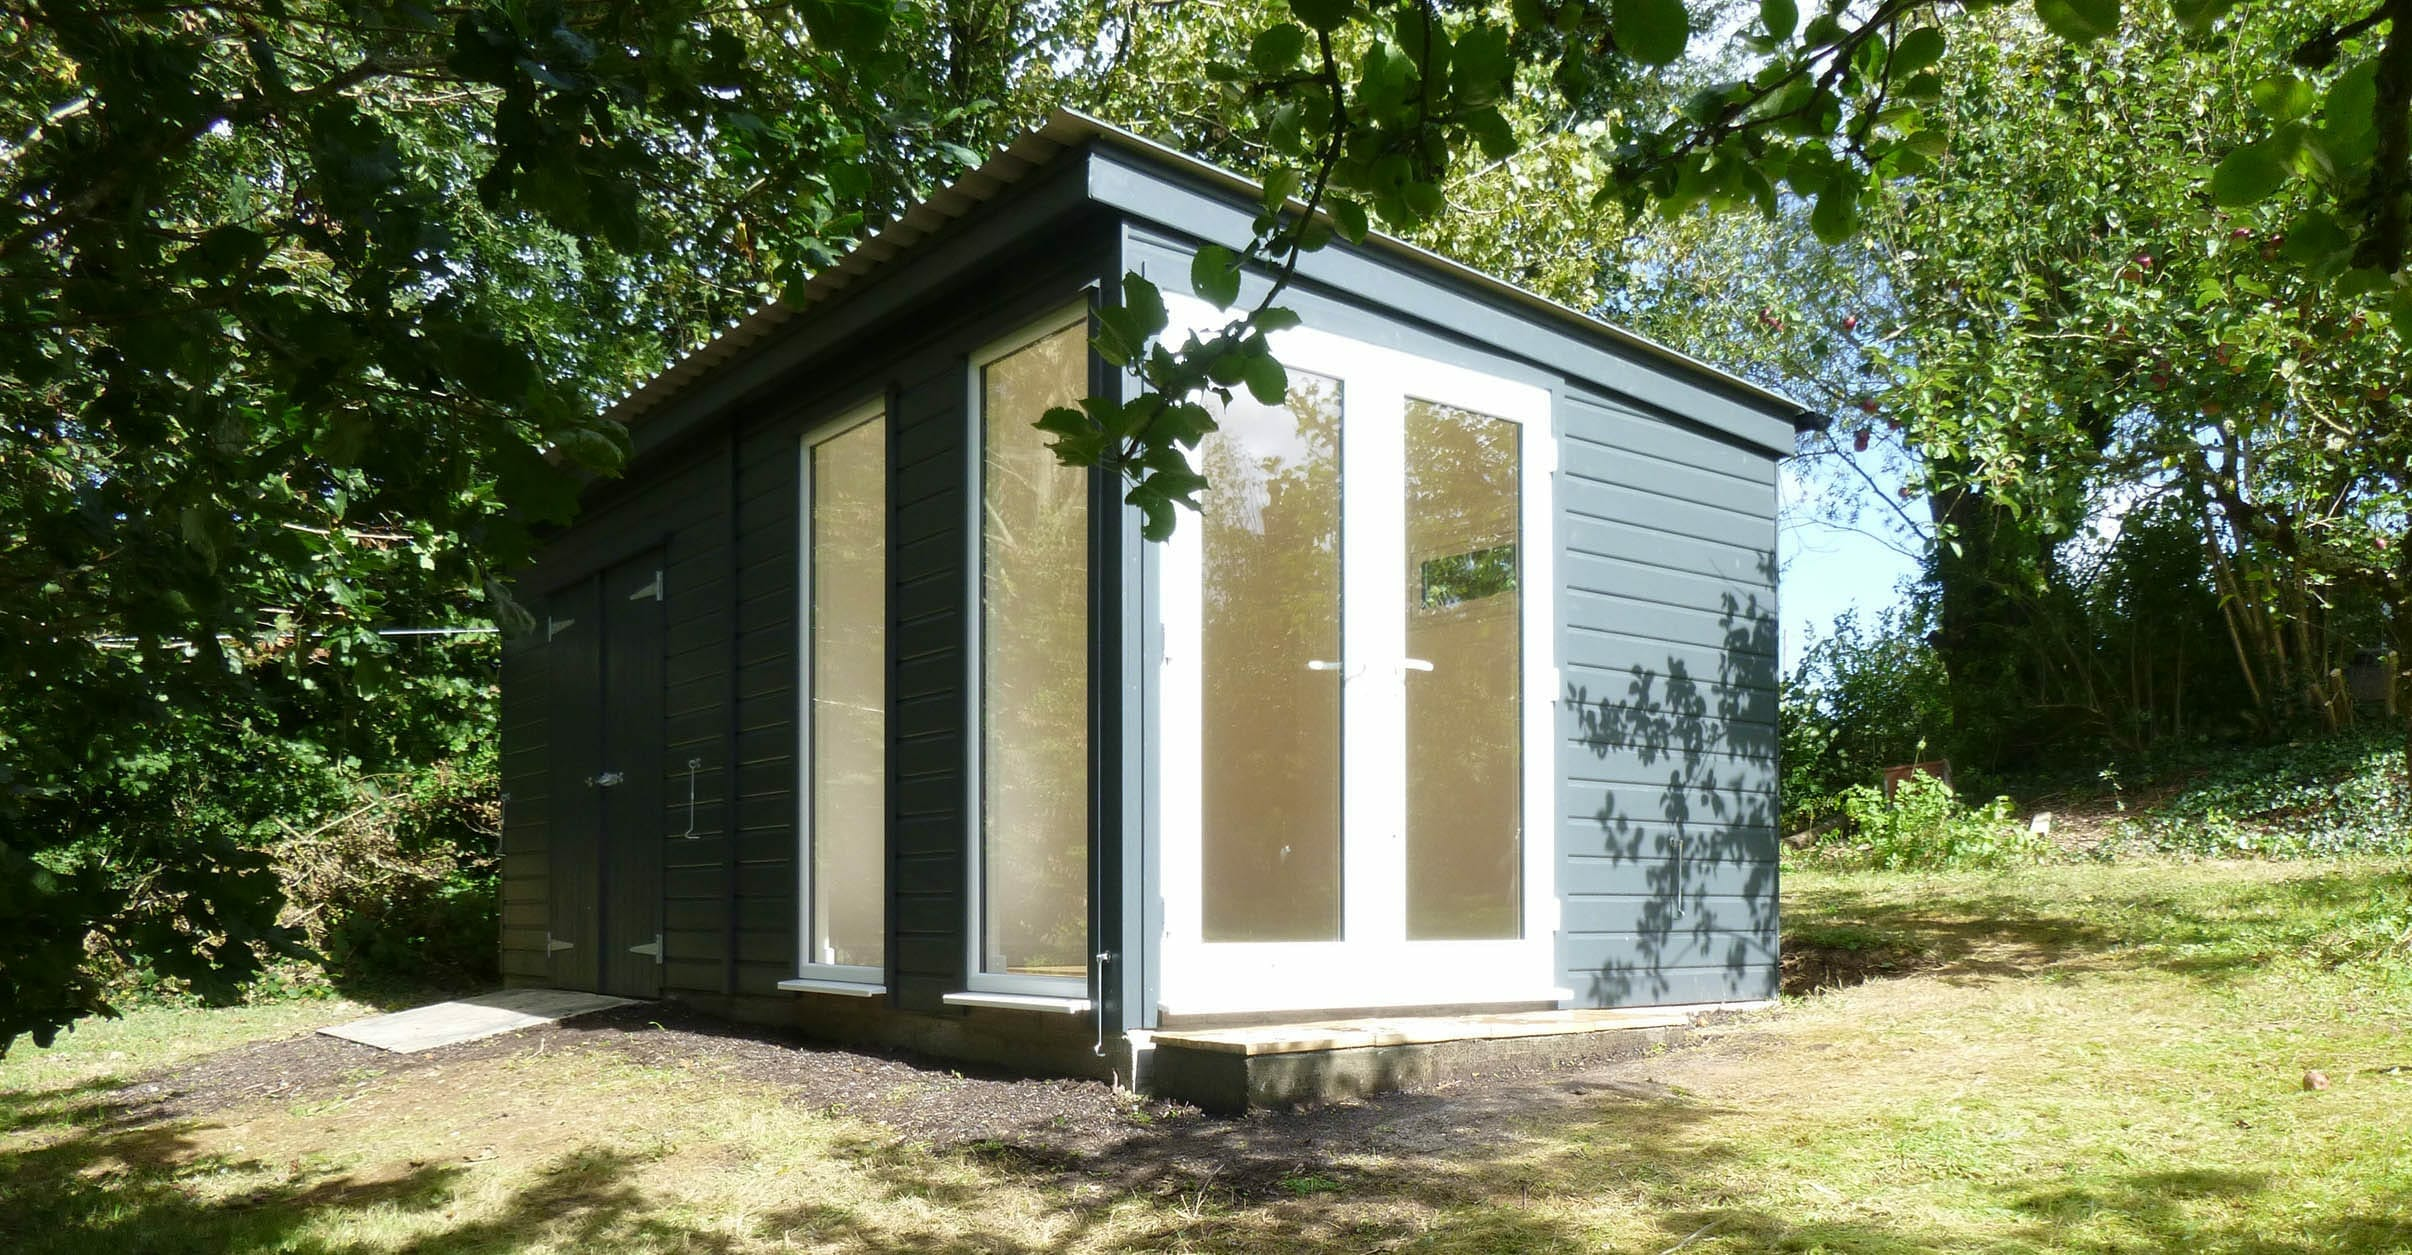 Combination garden studio shed